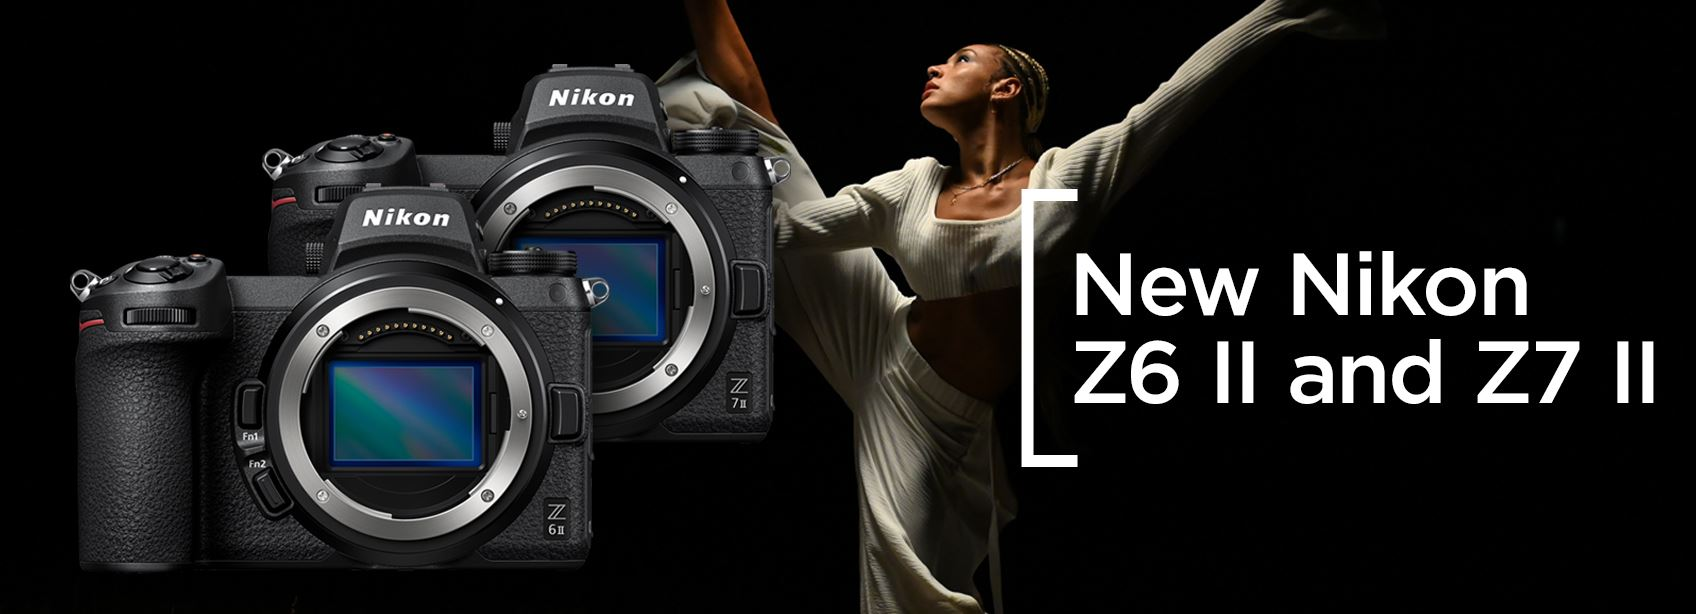 New Nikon Z6 II and Z7 II